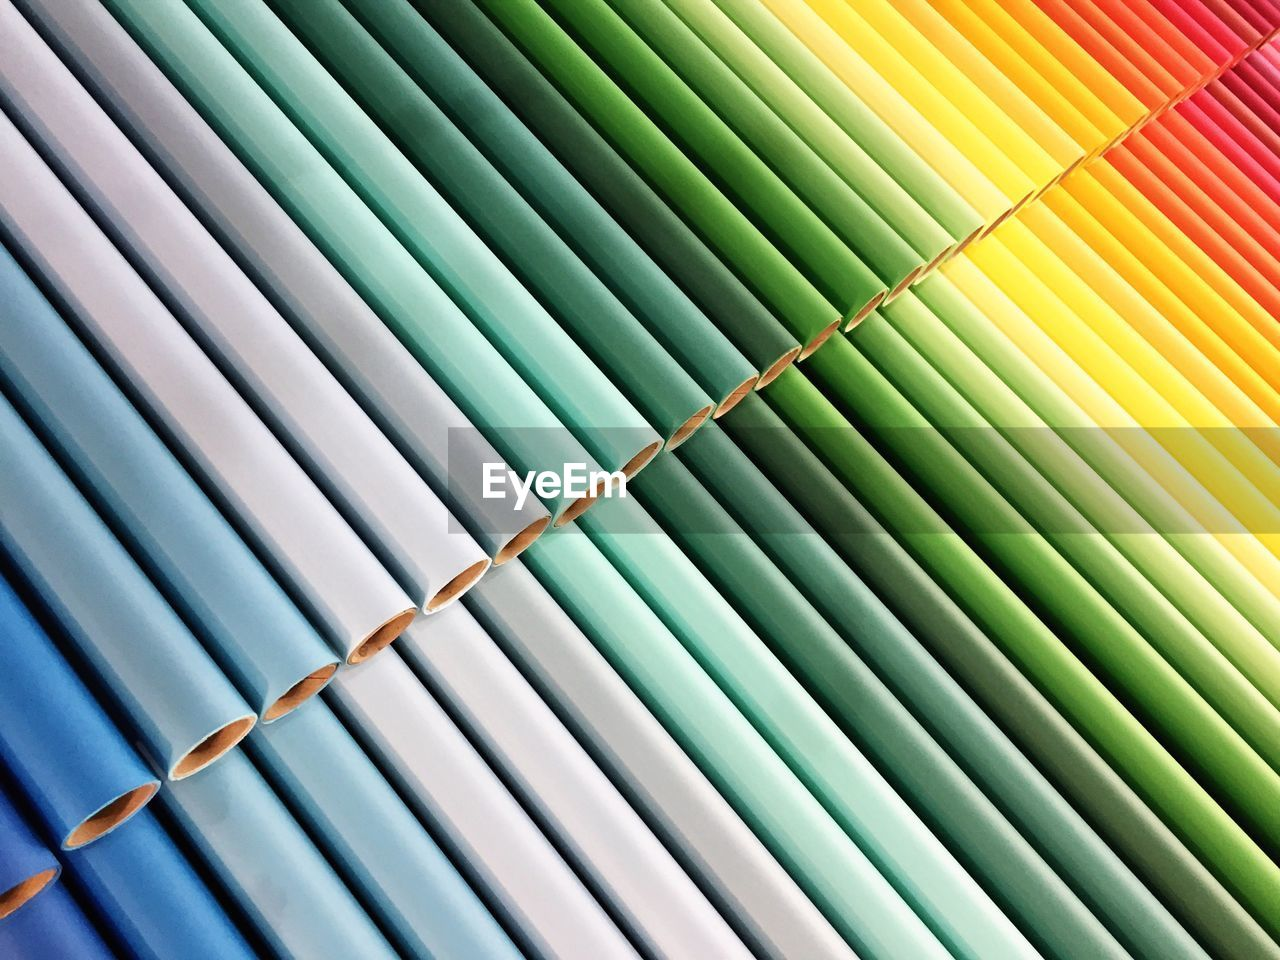 Full Frame Shot Of Color Wrapping Paper